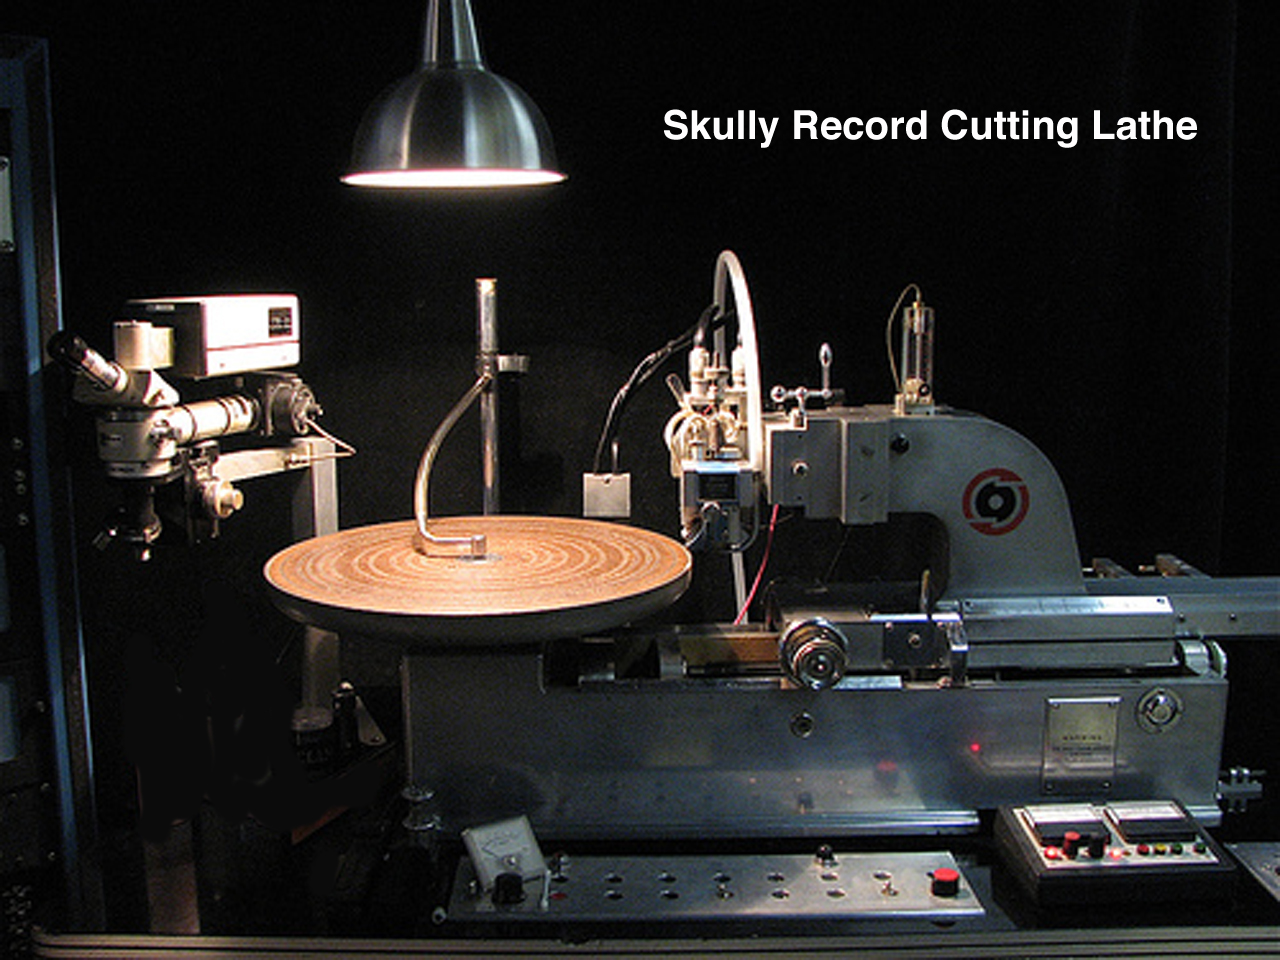 Scully lathe in the Reel2ReelTexas.com vintage recording collection